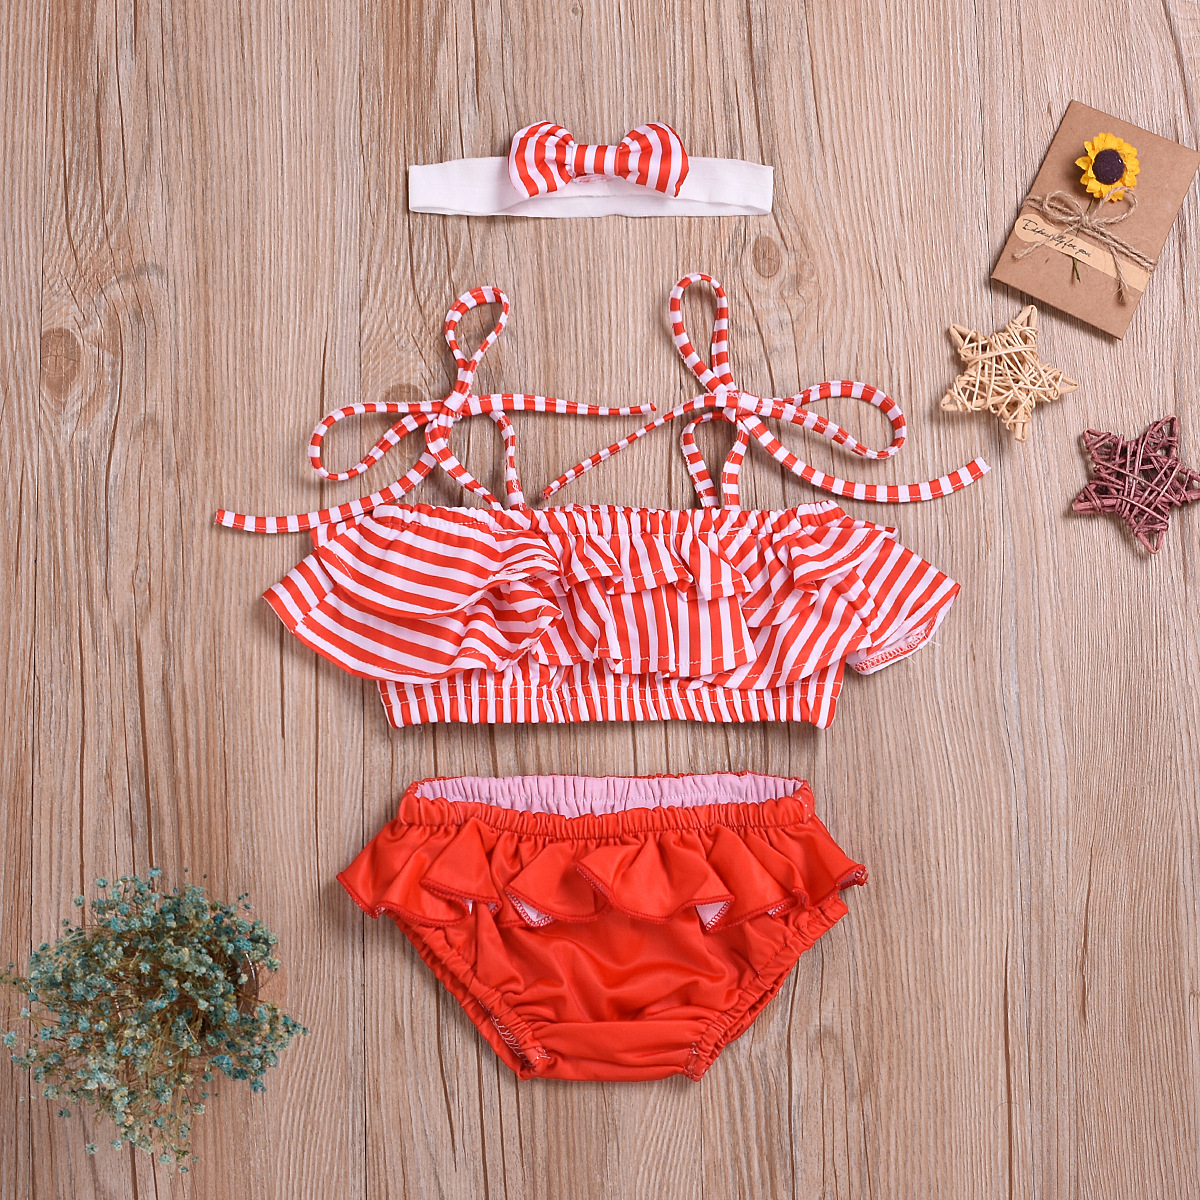 Childrenswear Summer Girls New Style Bathing Suit Stripes Swimsuit With Shoulder Straps Children Two-piece Swimsuits Three-piece